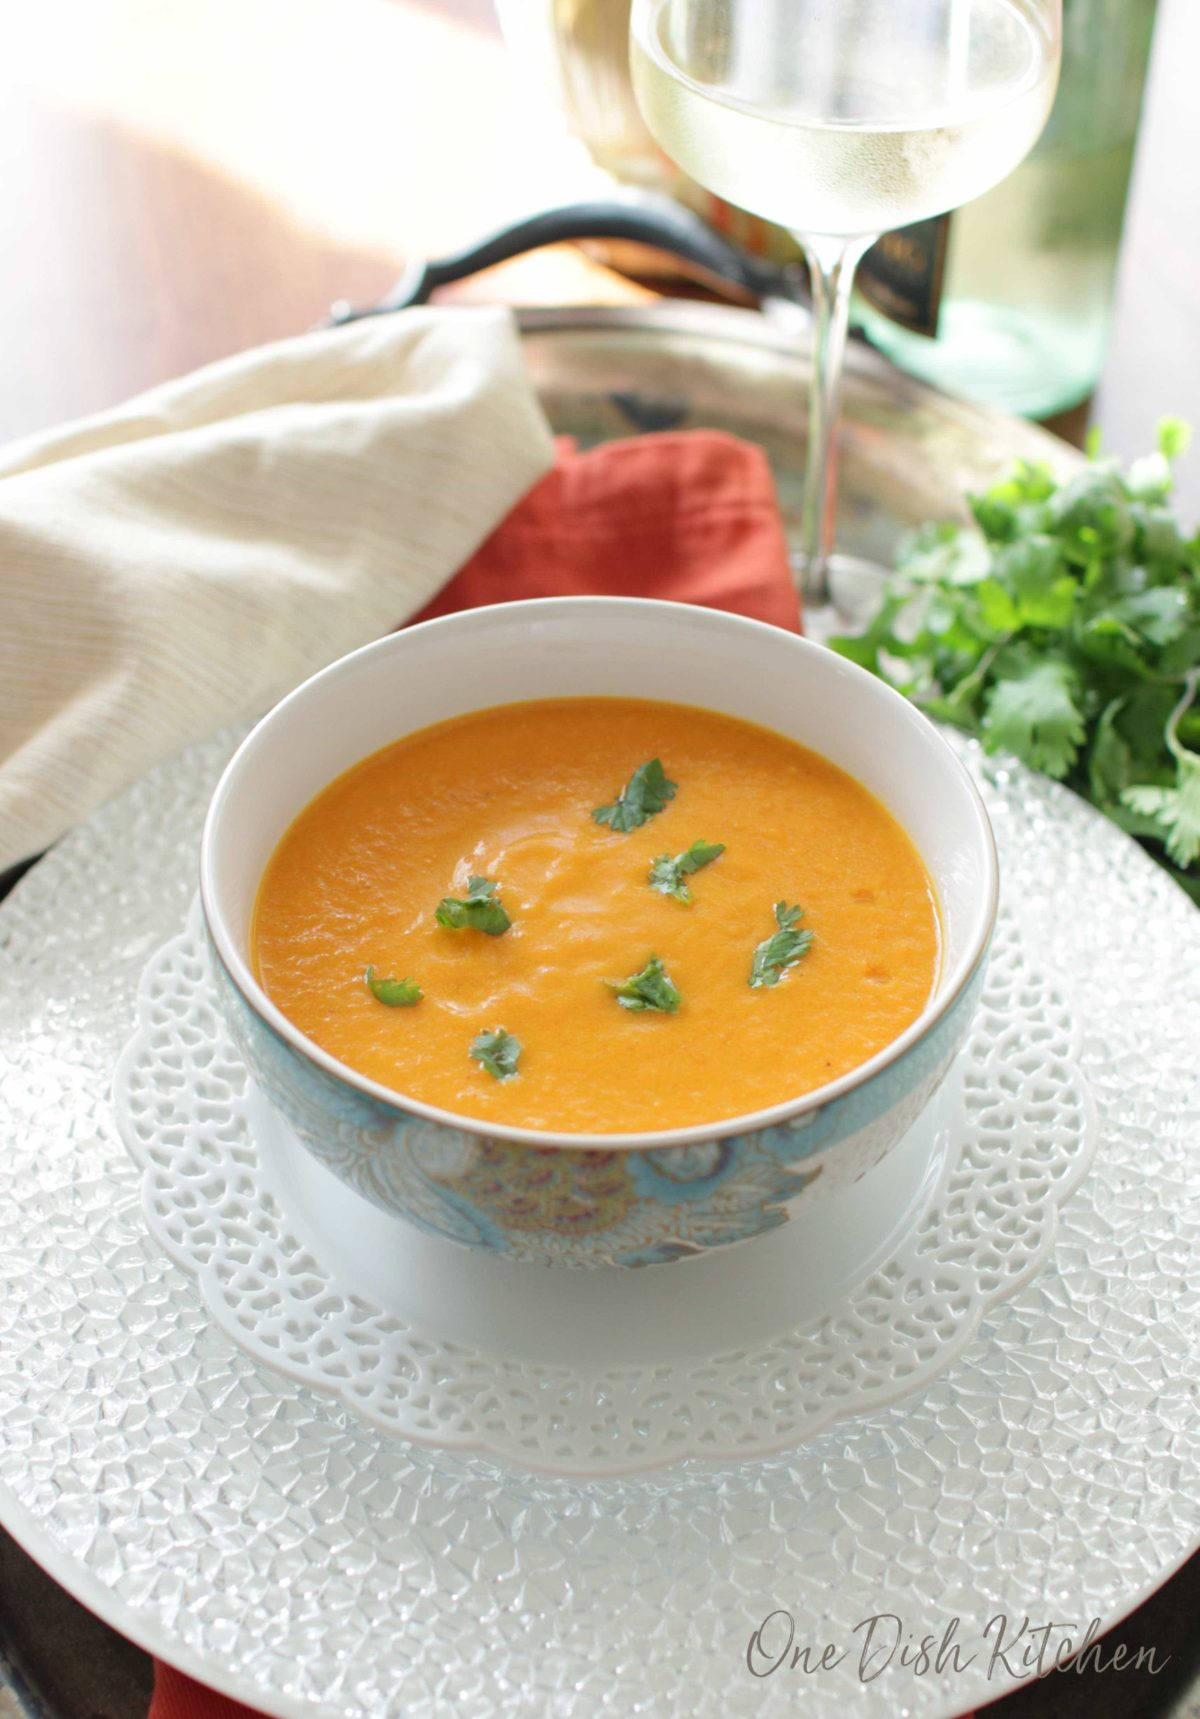 a bowl of carrot soup on a tray next to a glass of white wine.